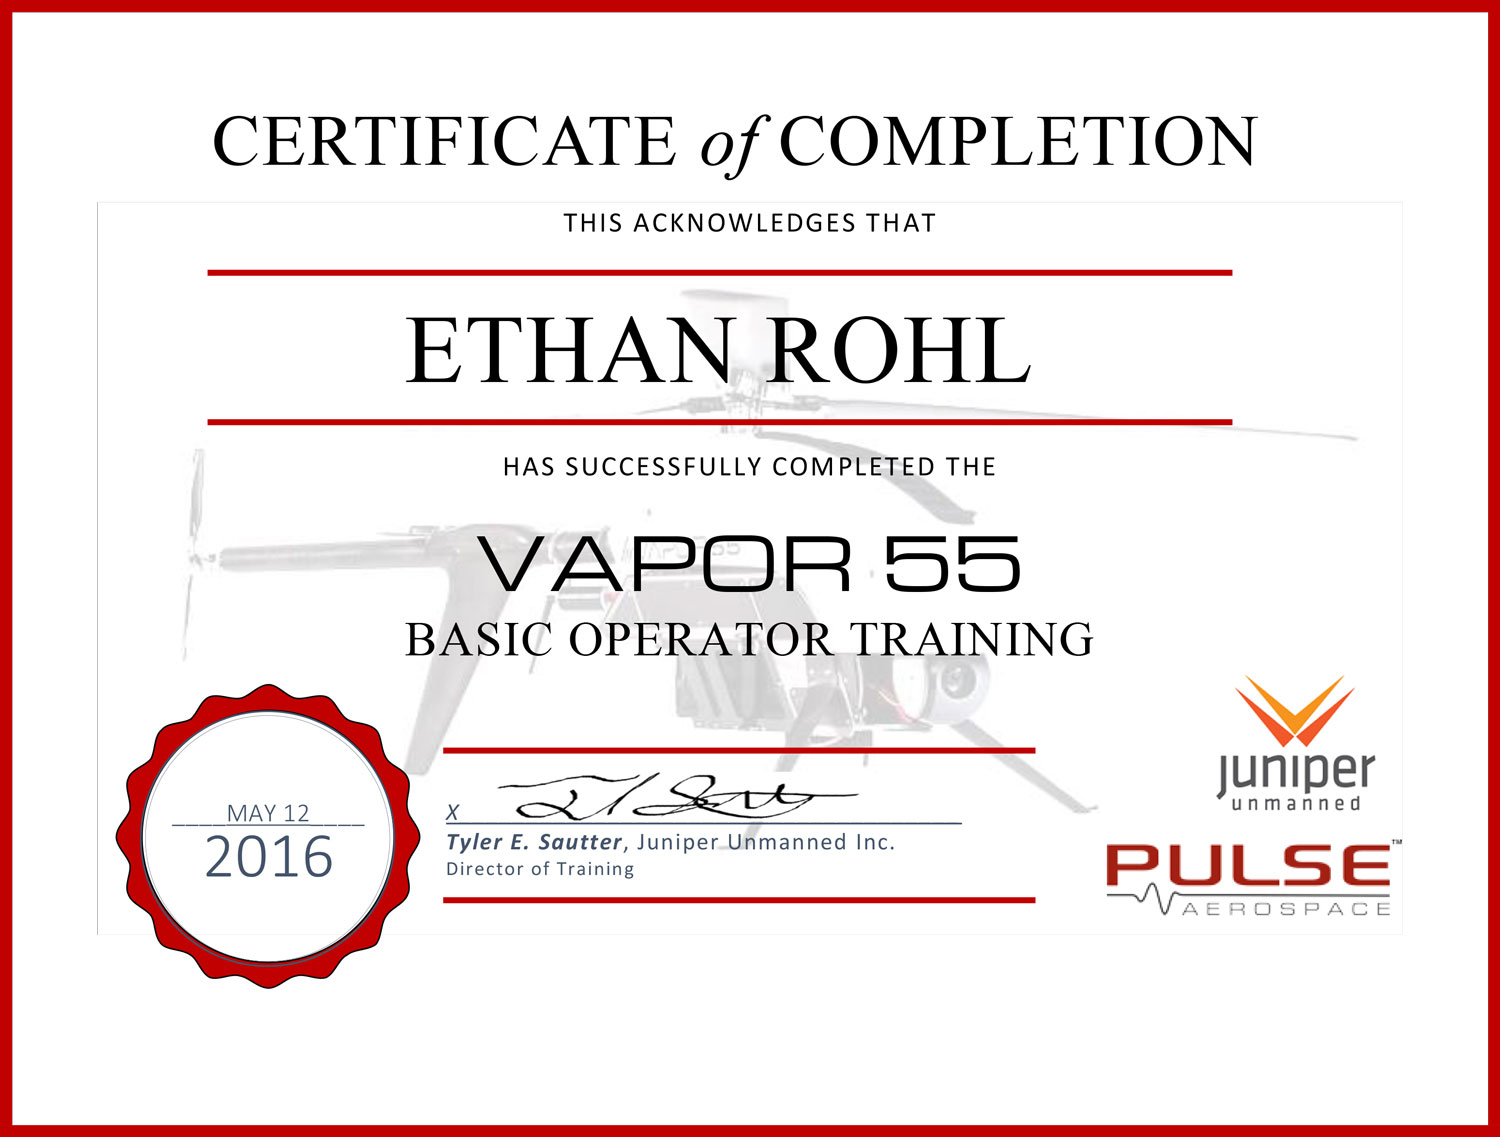 Certificates rohl drones inc certificate of vapour 55 basic operator training xflitez Choice Image